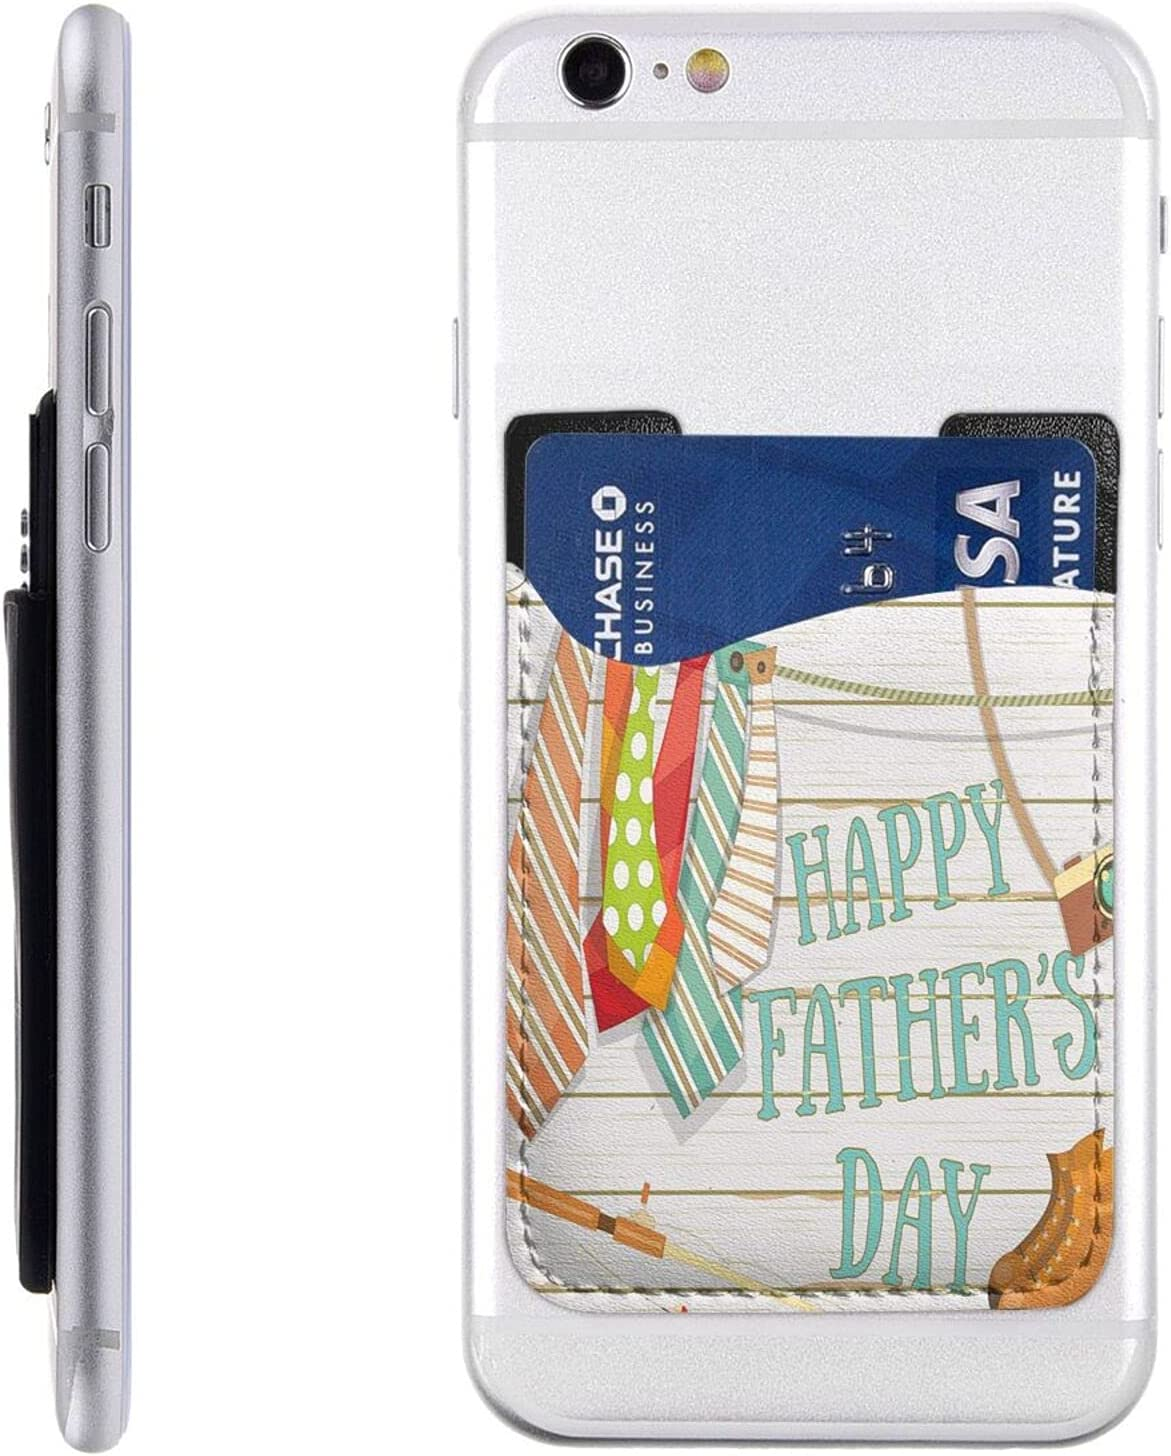 Happy Father's Day Phone Card Stick New Manufacturer direct delivery York Mall Cell On Wa Holder